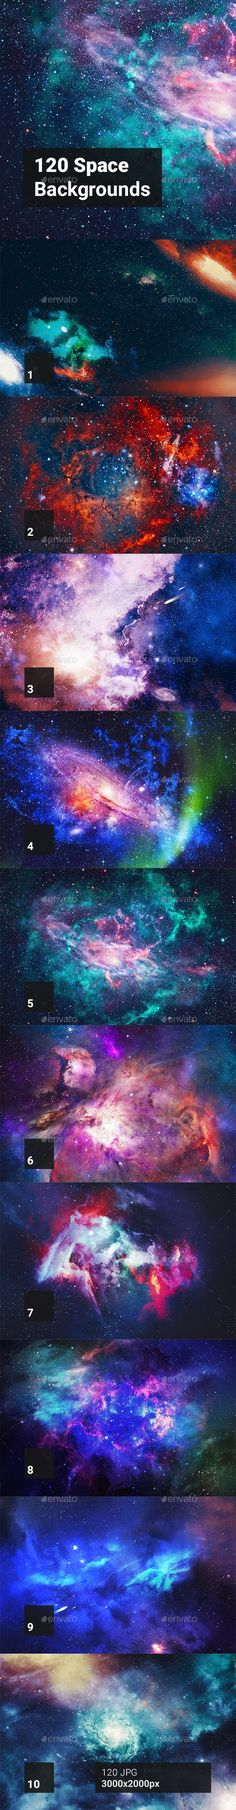 Buy 120 Space Backgrounds by kauster- on GraphicRiver. 120 Space Backgrounds This pack includes 120 Space Backgrounds. Suitable for printing, web design, banners, posters …. Space Backgrounds, Background Images Wallpapers, Abstract Backgrounds, Creative Typography Design, Space Text, Purple Sky, Web Design, Graphic Design, Business Flyer Templates